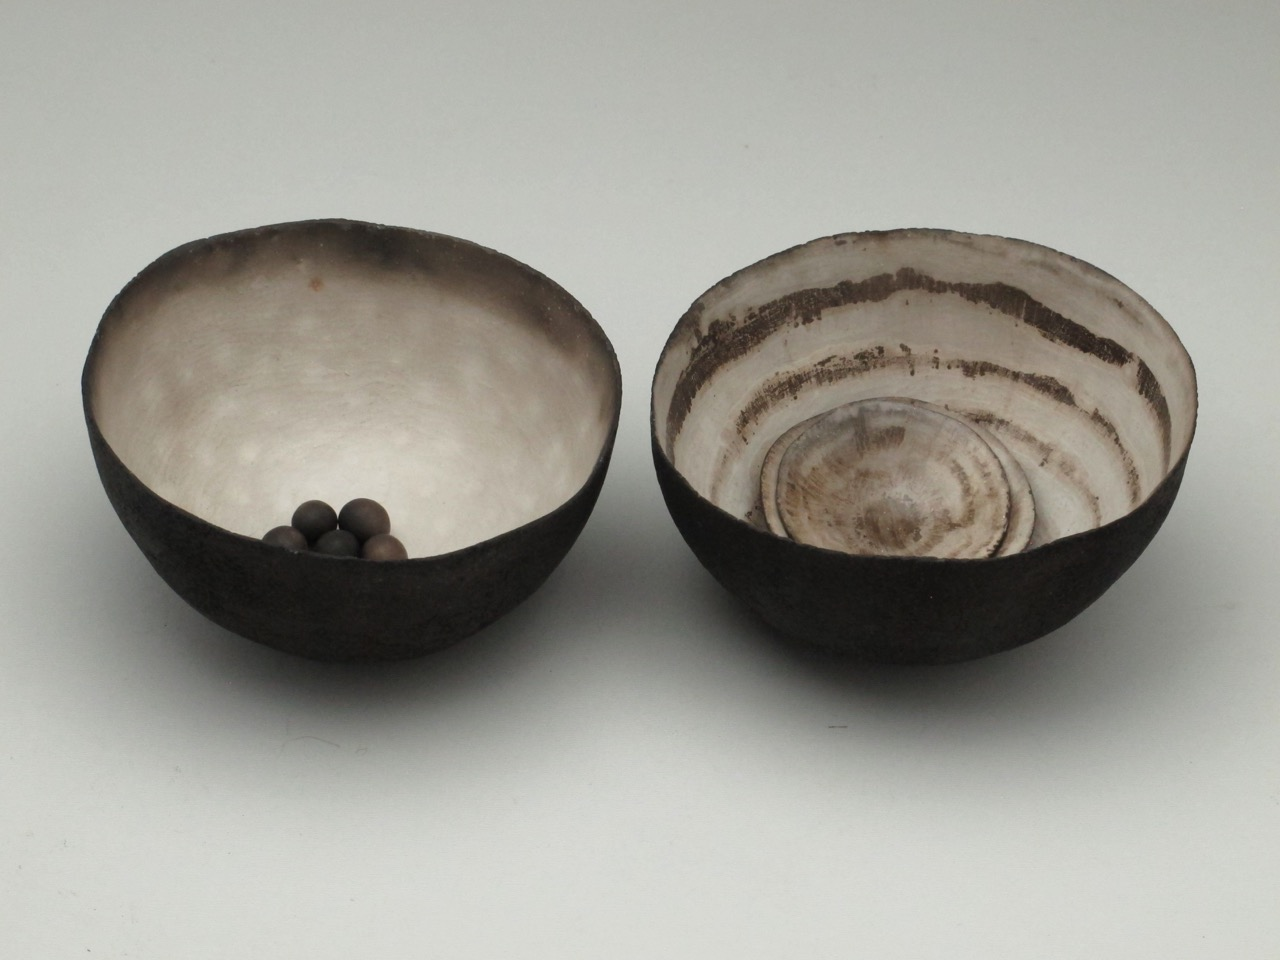 Set Piece; Two Large Vessels Two Small Ceramic Shells and Small Seeds